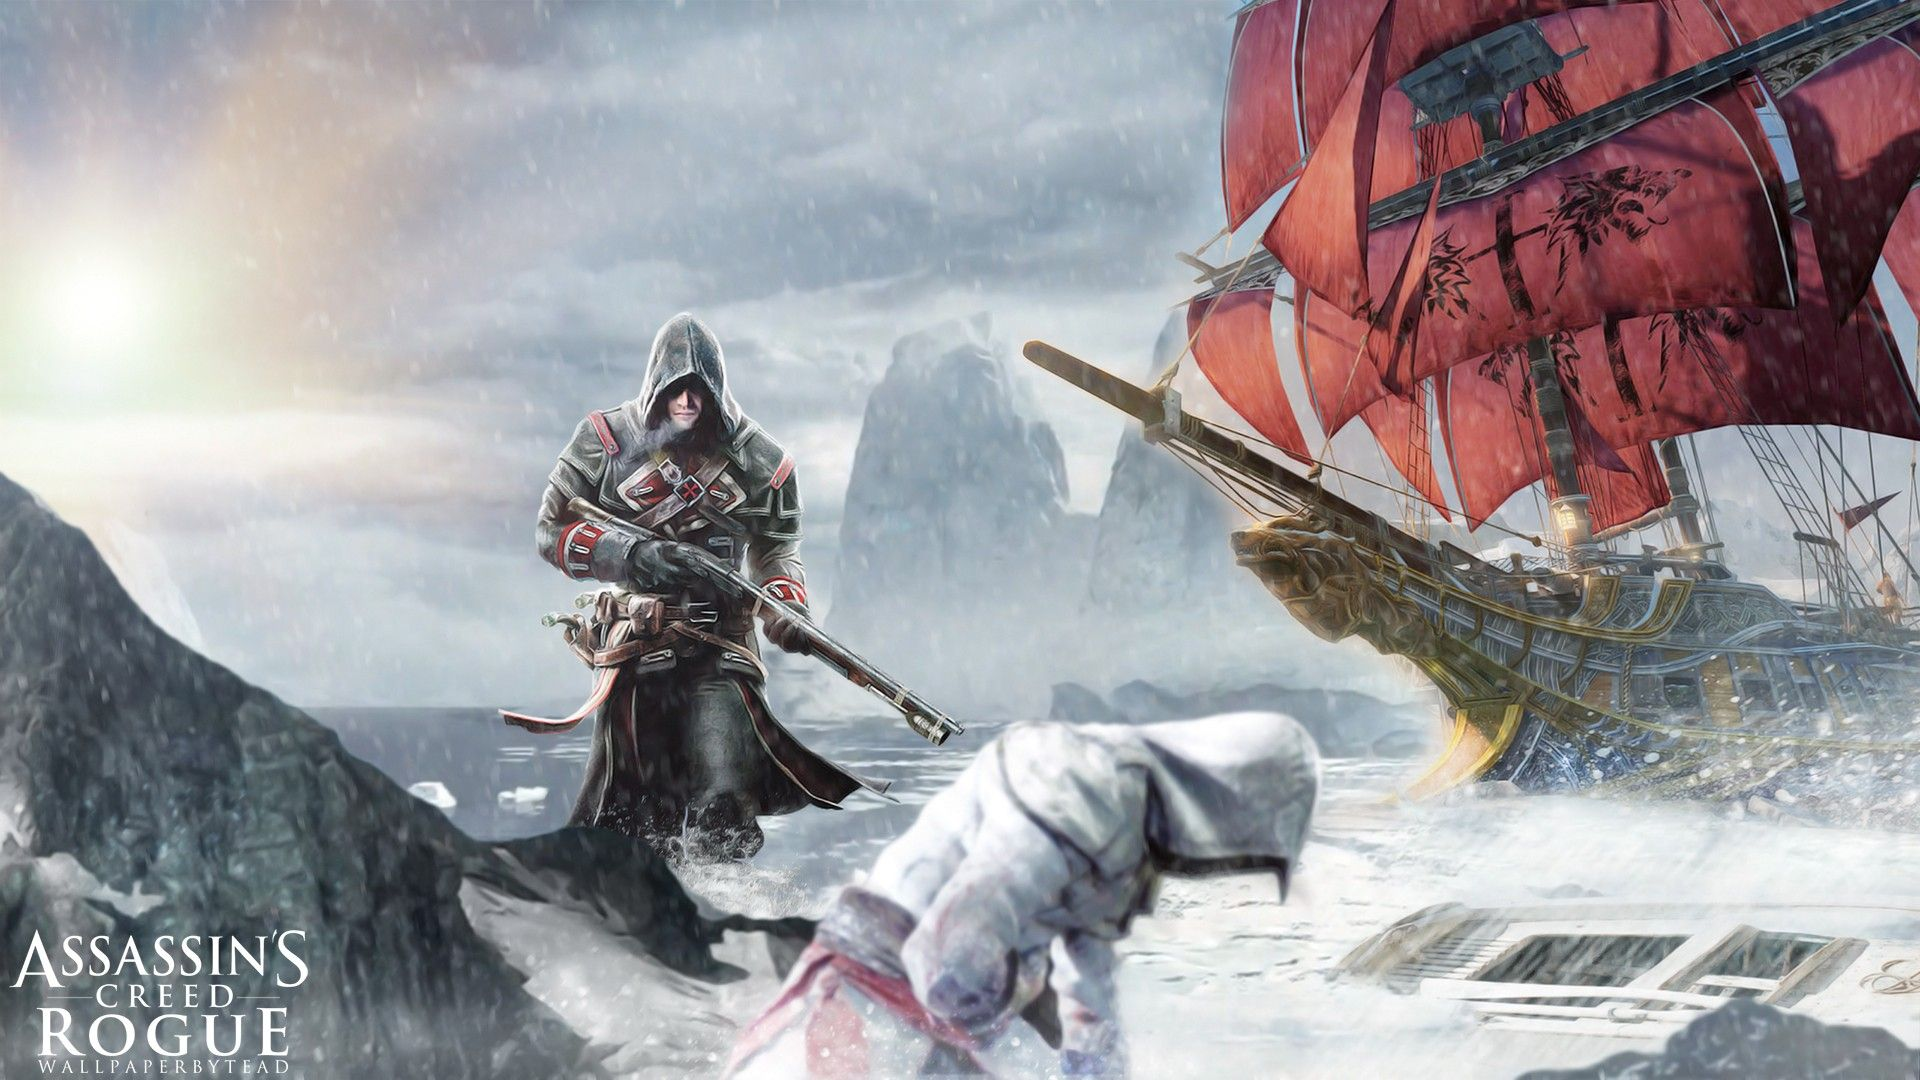 Pin By Mallory On Ac Rogue Pinterest Assassins Creed Assassin